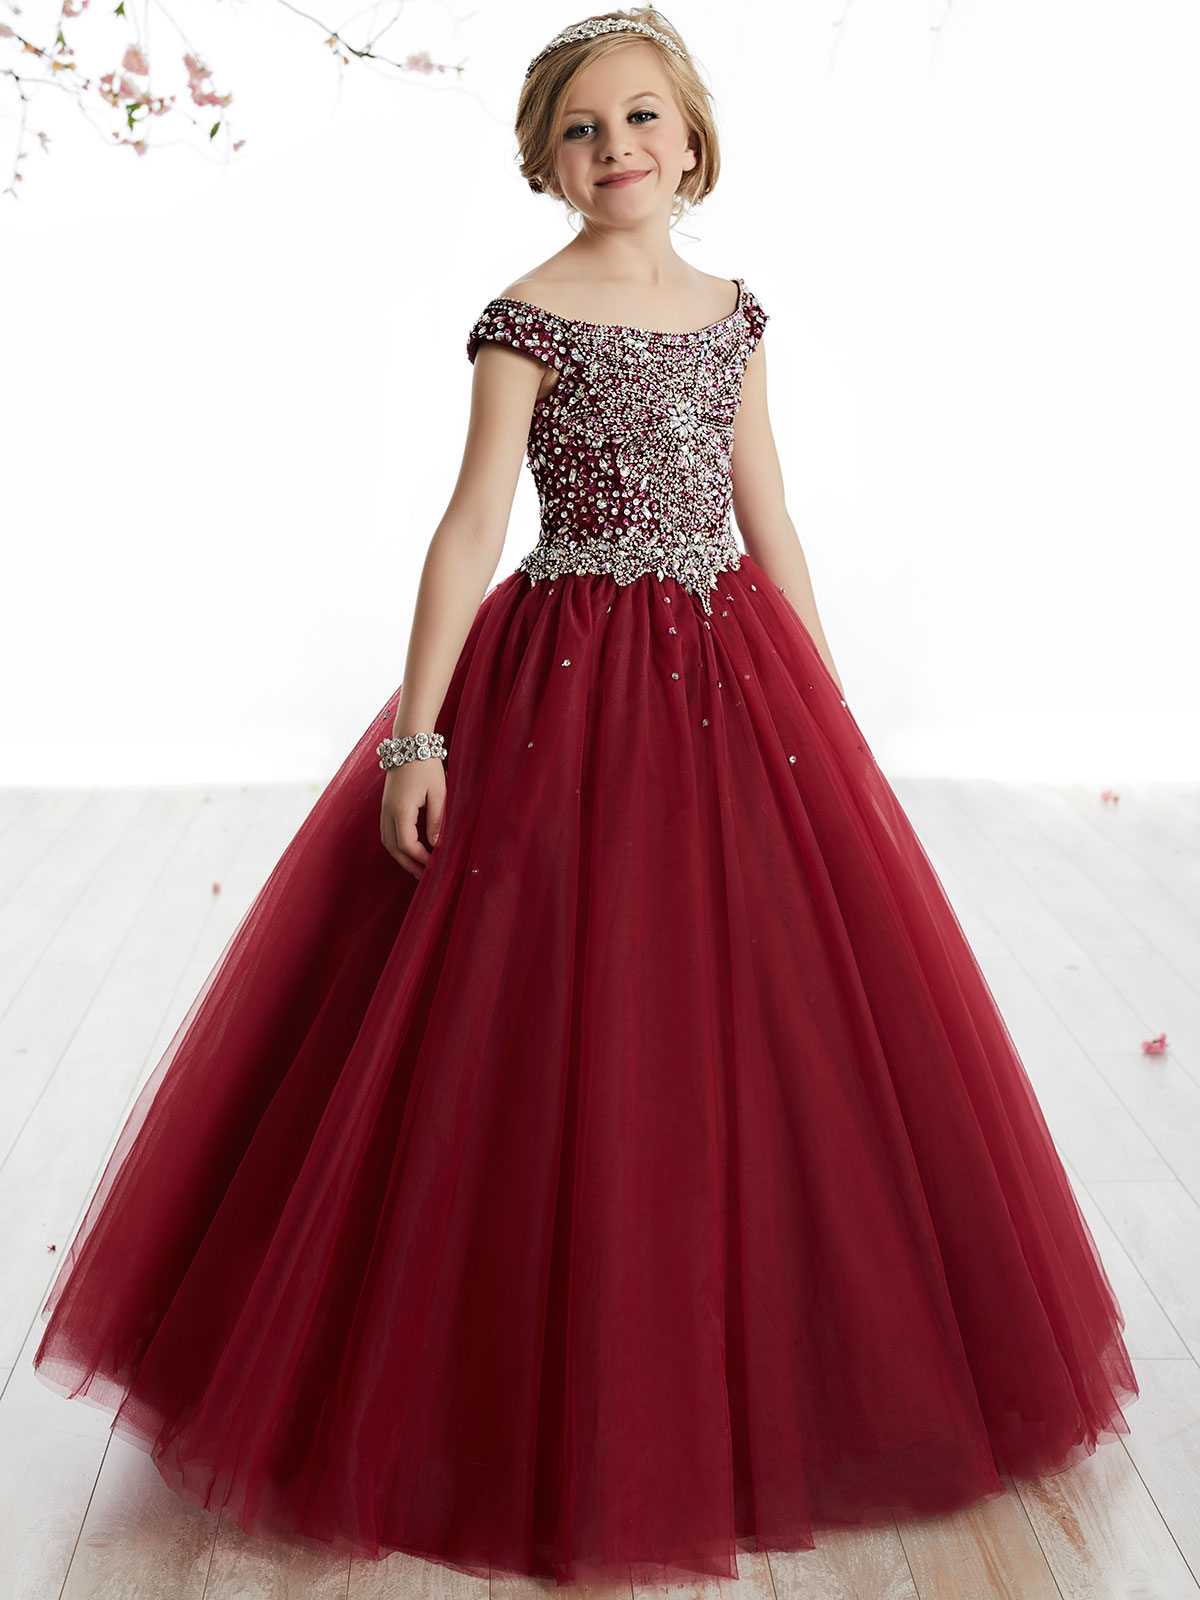 Staggering Tiffany Princes Off Shoulder Pageant Dress Tiffany Princess Off Shoulder Ball Gown Dress Pageant Dresses Girls Near Me wedding dress Pageant Dresses For Girls